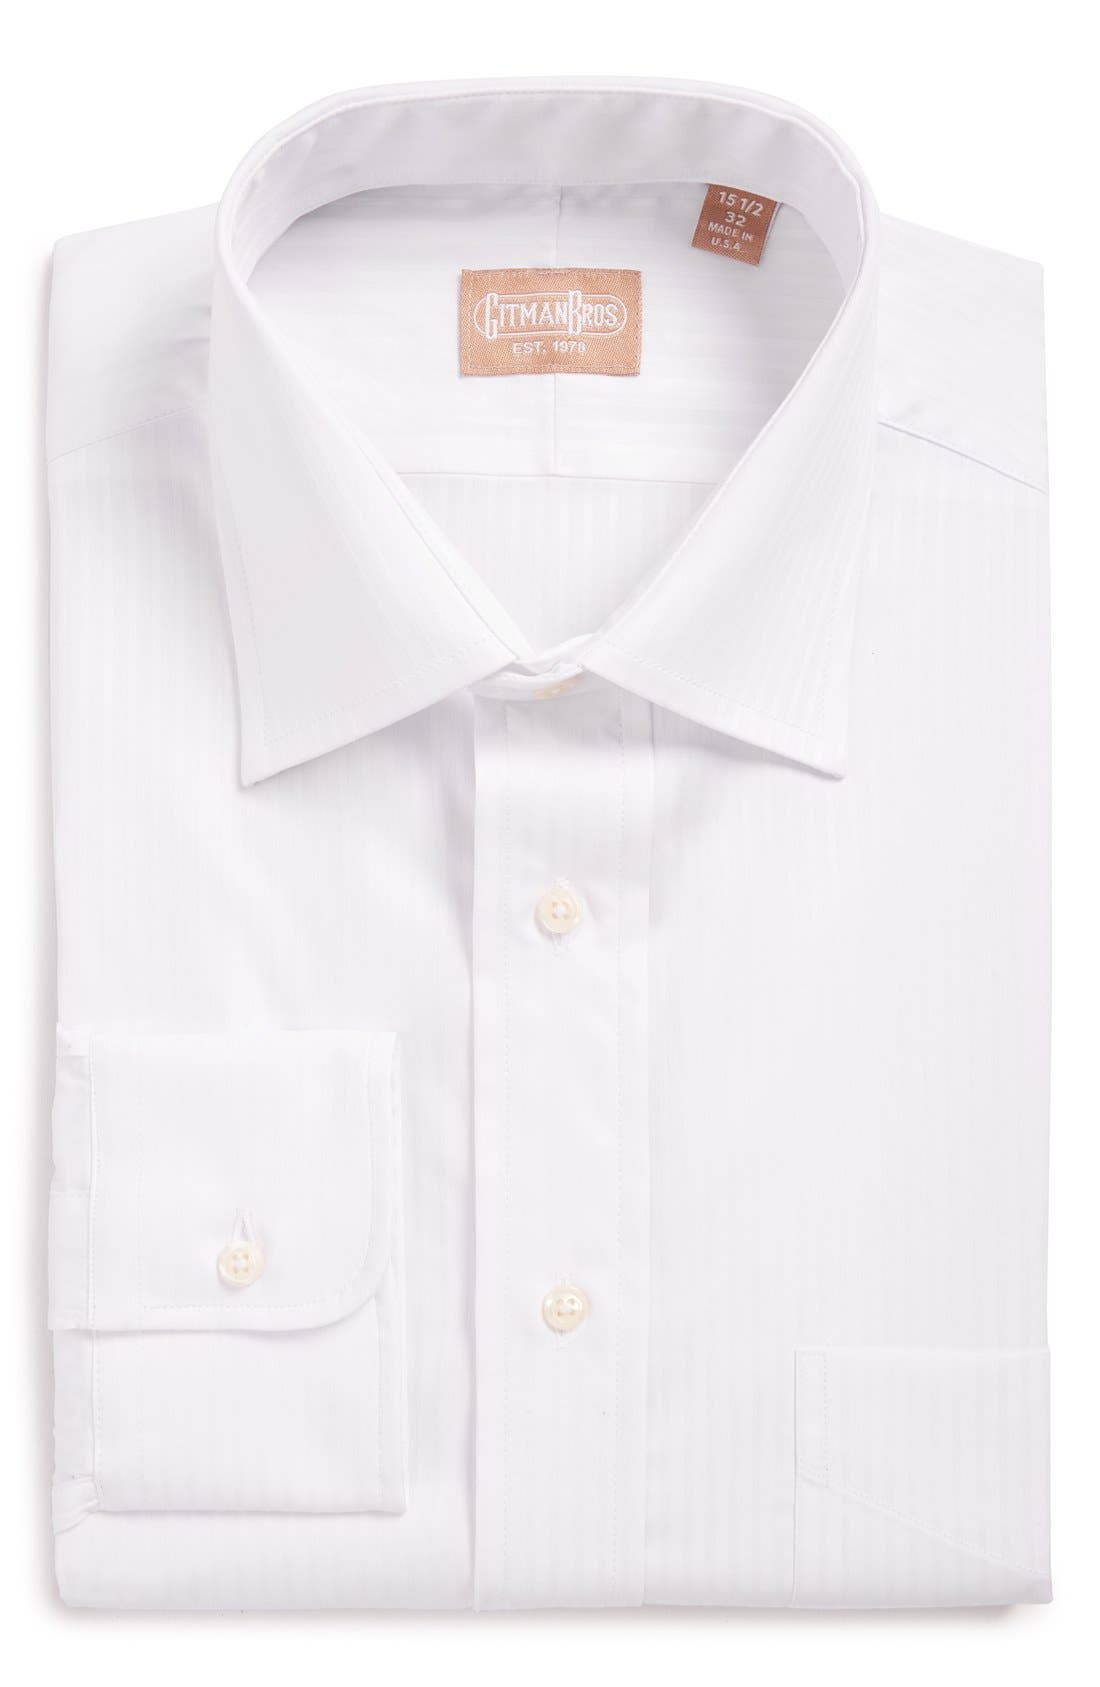 Main Image - Gitman Regular Fit Tonal Stripe Twill Dress Shirt